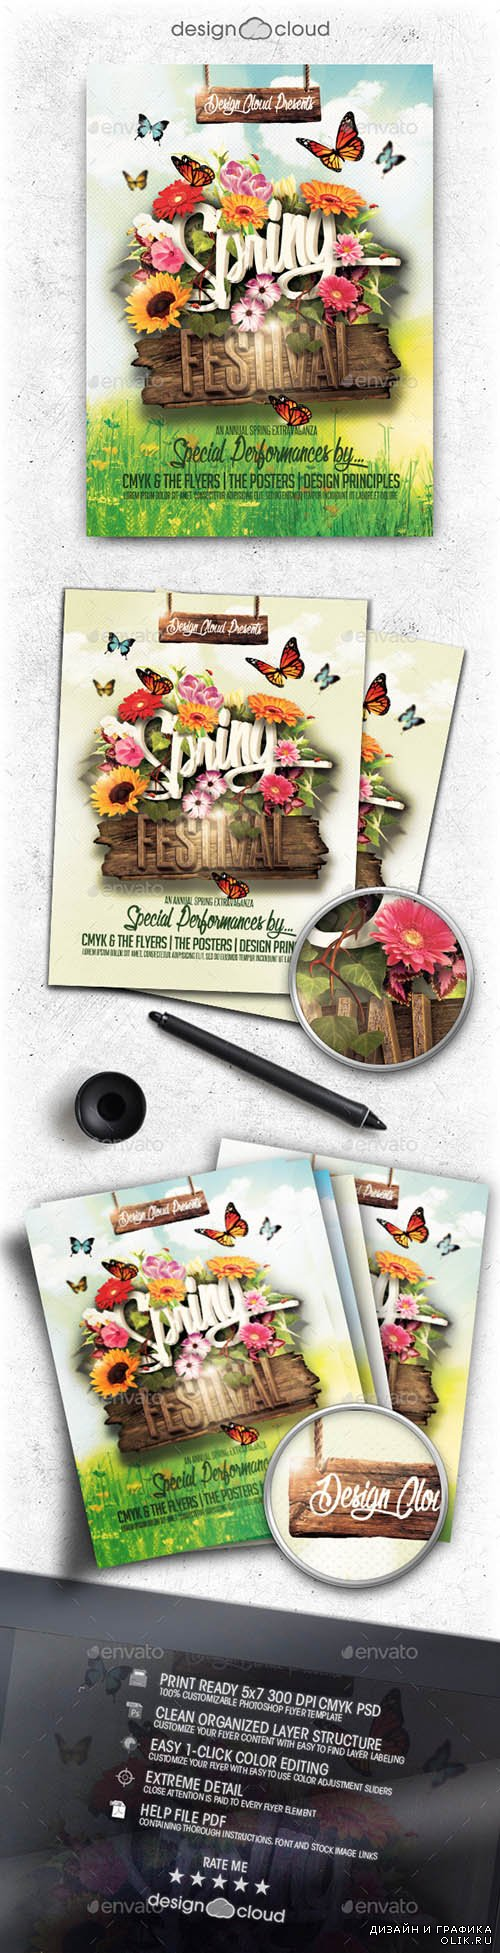 GraphicRiver - Spring Festival Flyer Template 10414877